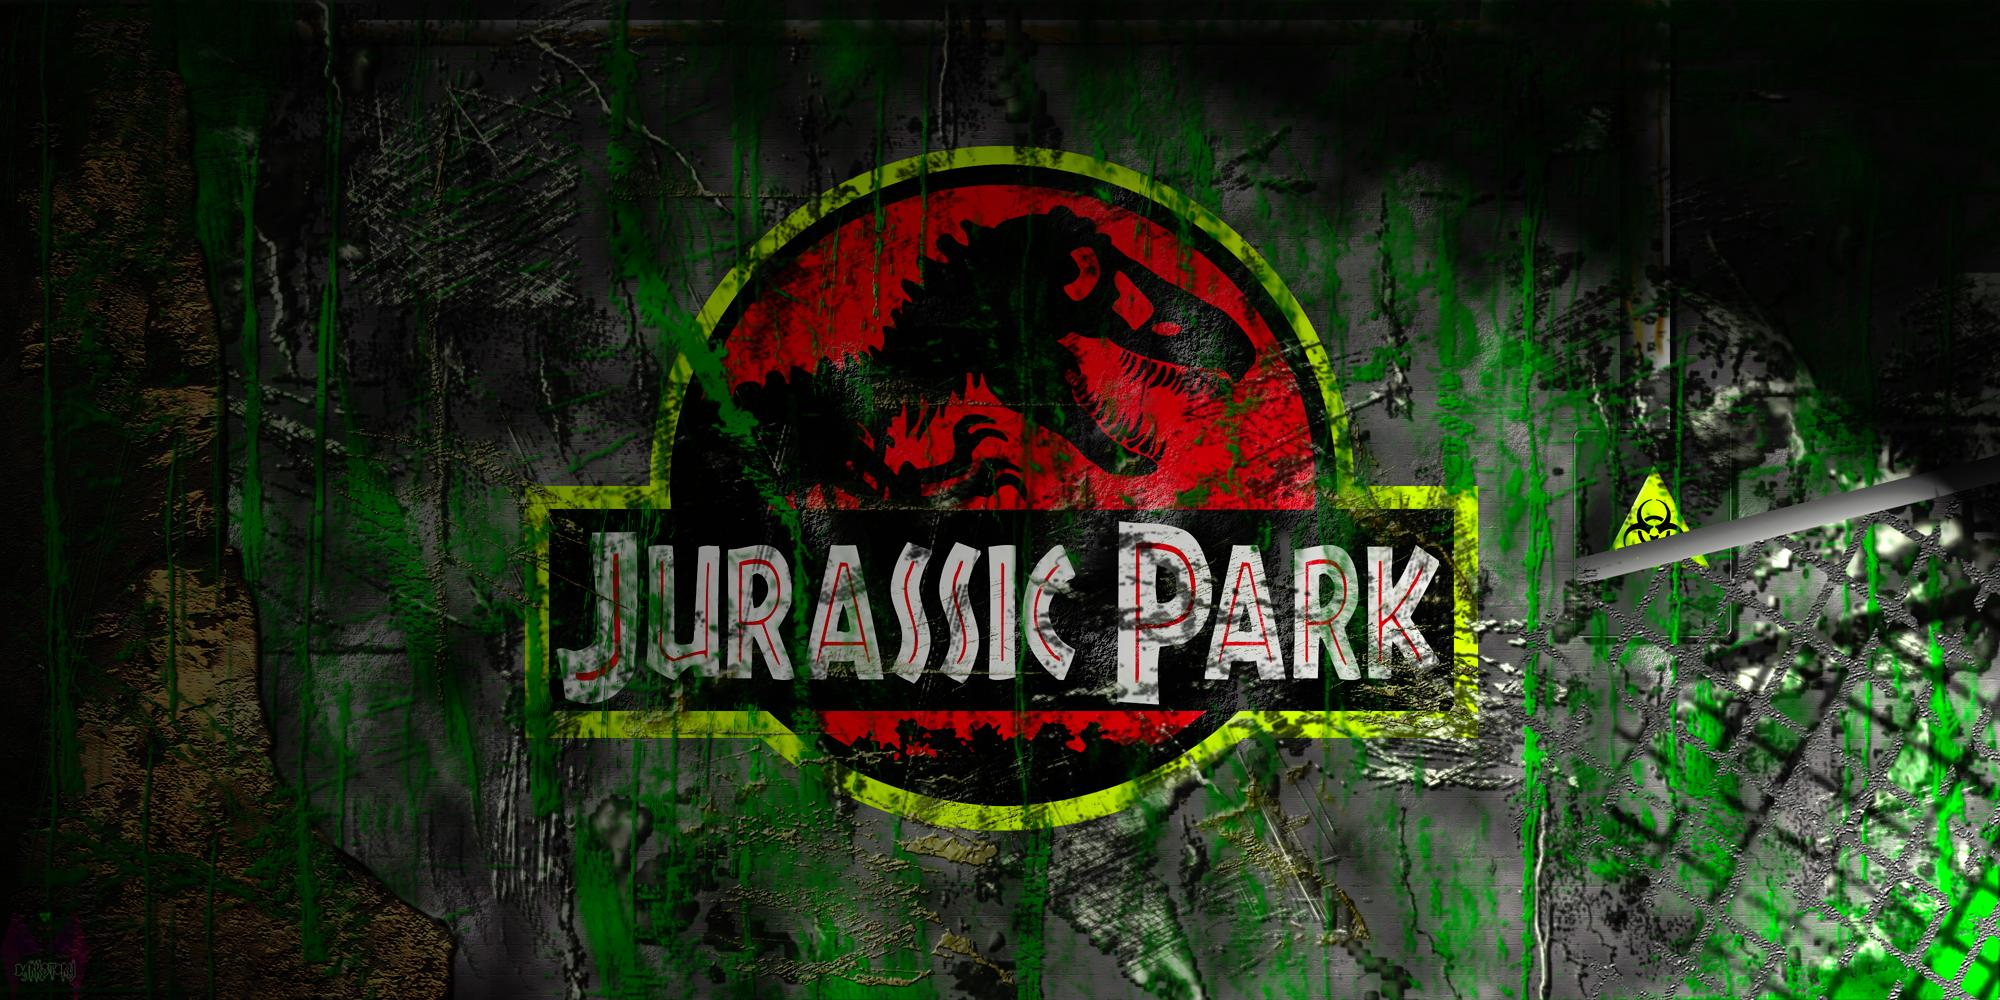 Jurassic Park Wallpapers - Wallpaper Cave